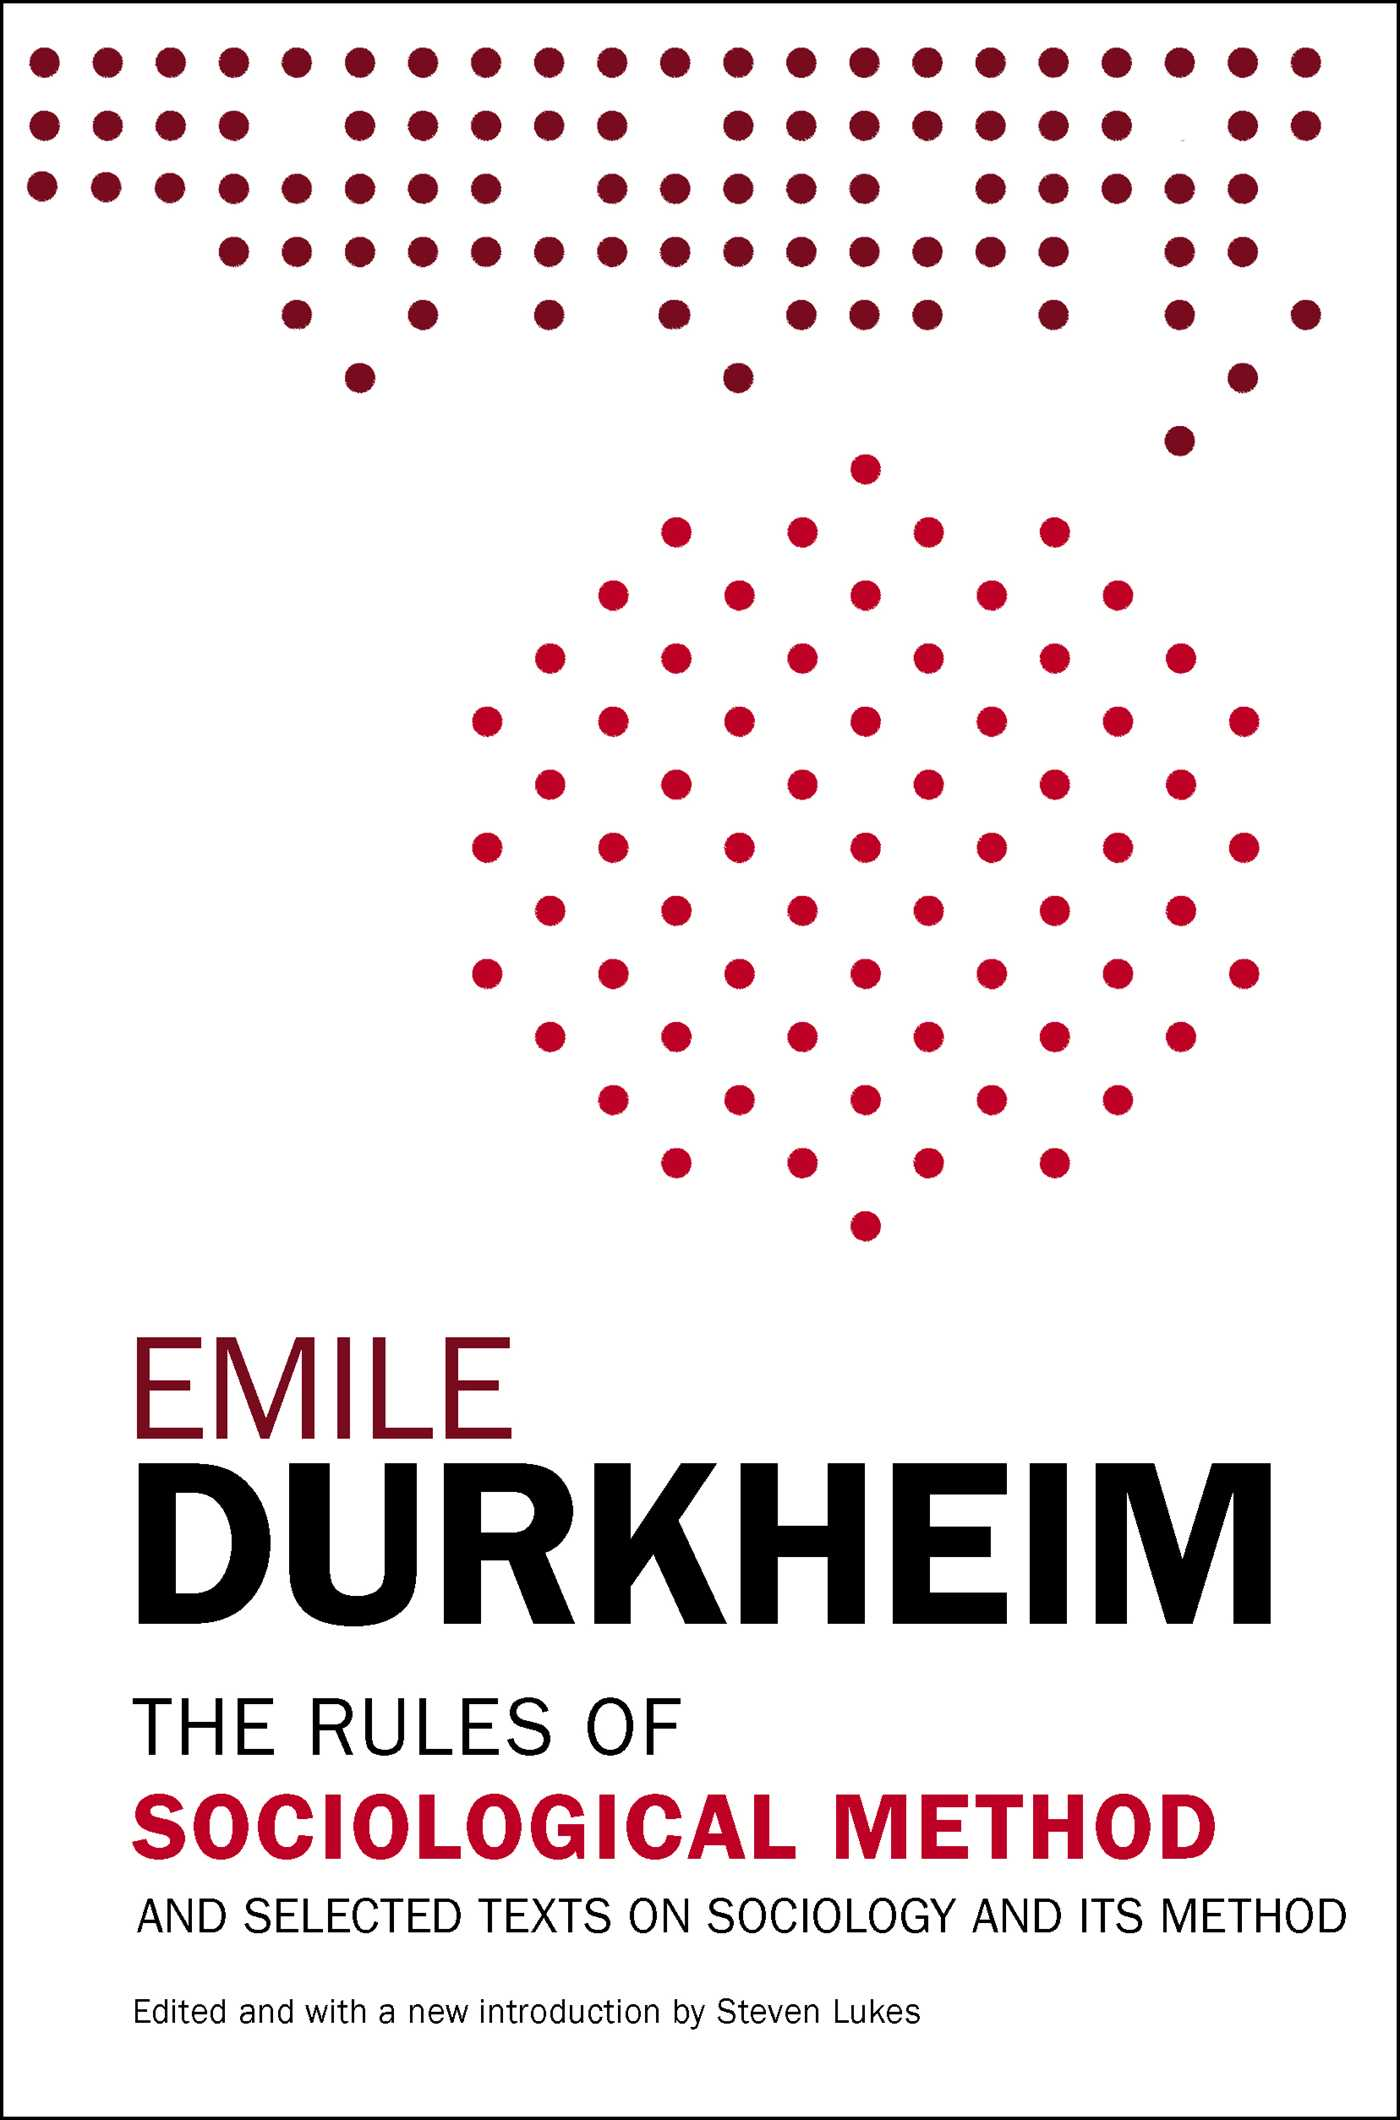 the life and contributions of david emile durkheim The contributions of emile durkheim  - throughout his life david emile durkheim managed to write about many aspects of life,.